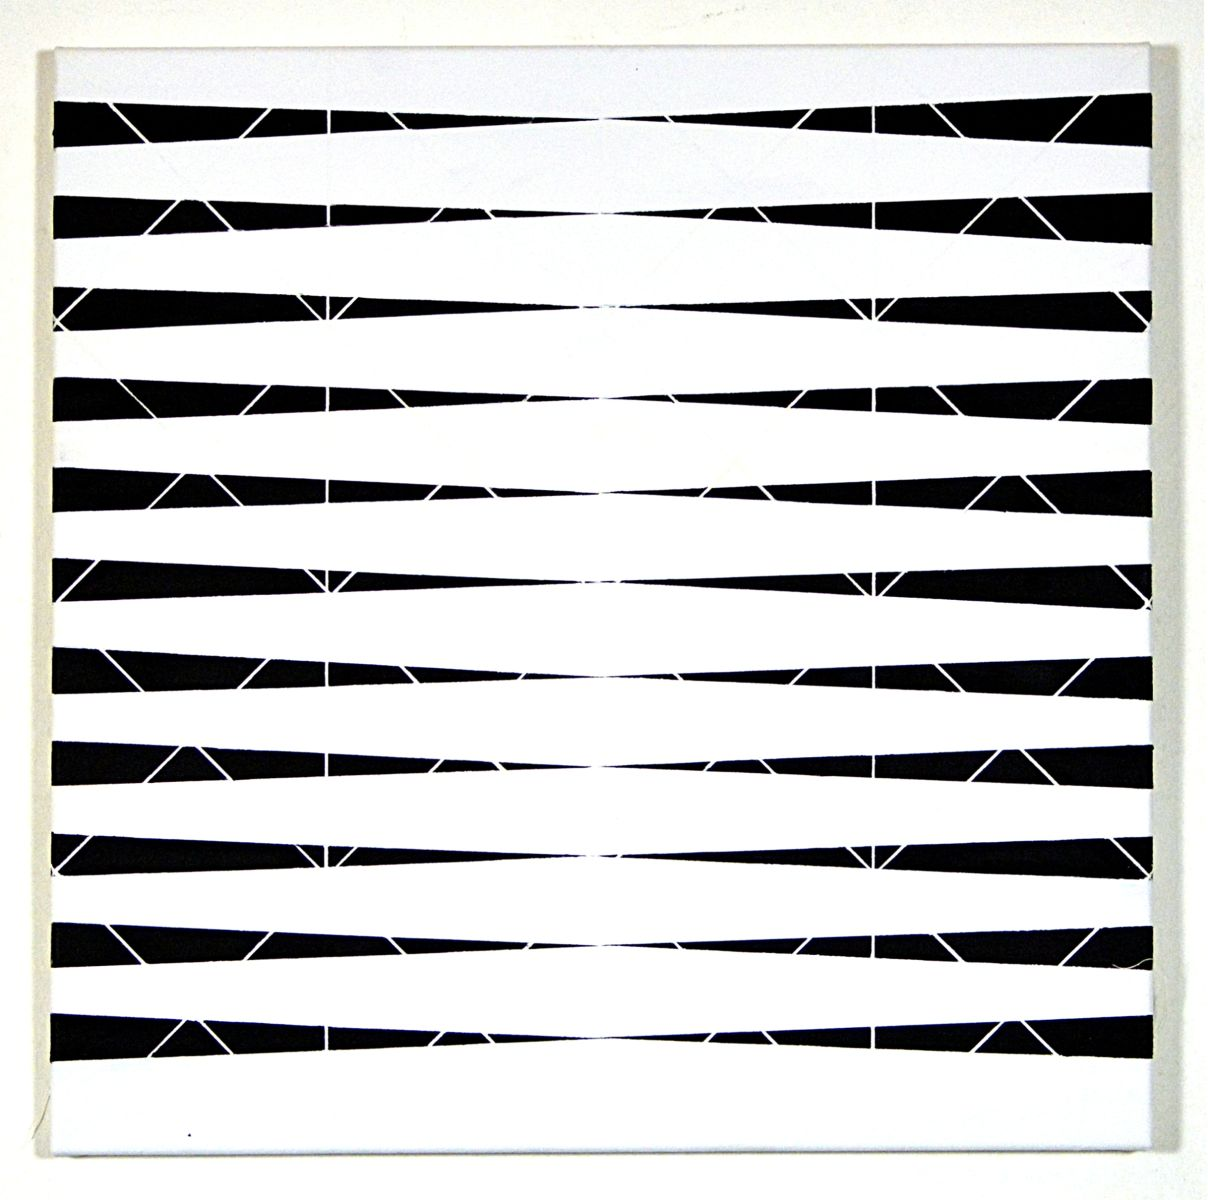 white lines between black and white stripes on canvas-exhibition-lower austria